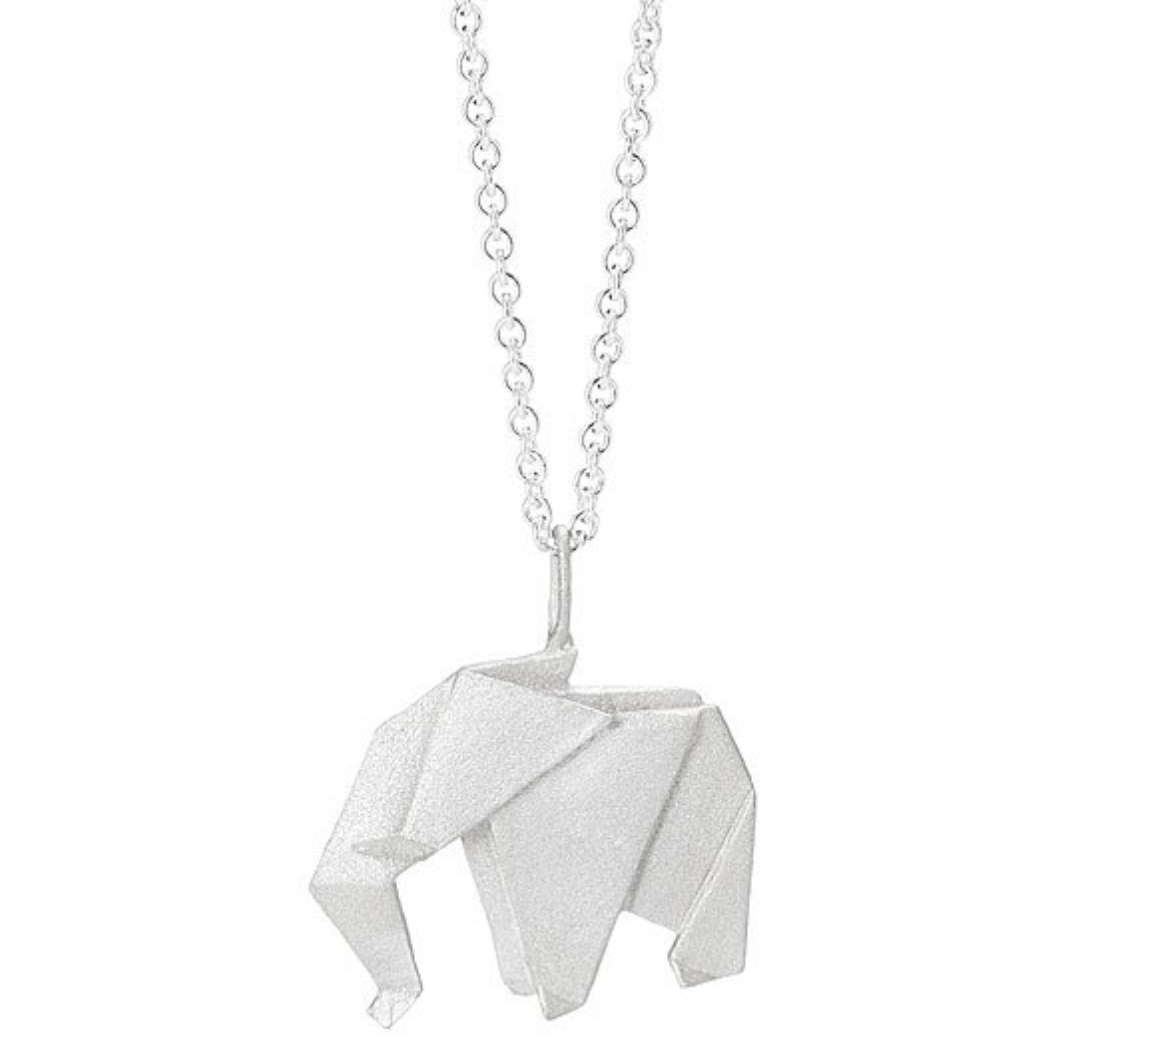 elephant-gifts-origami-necklace